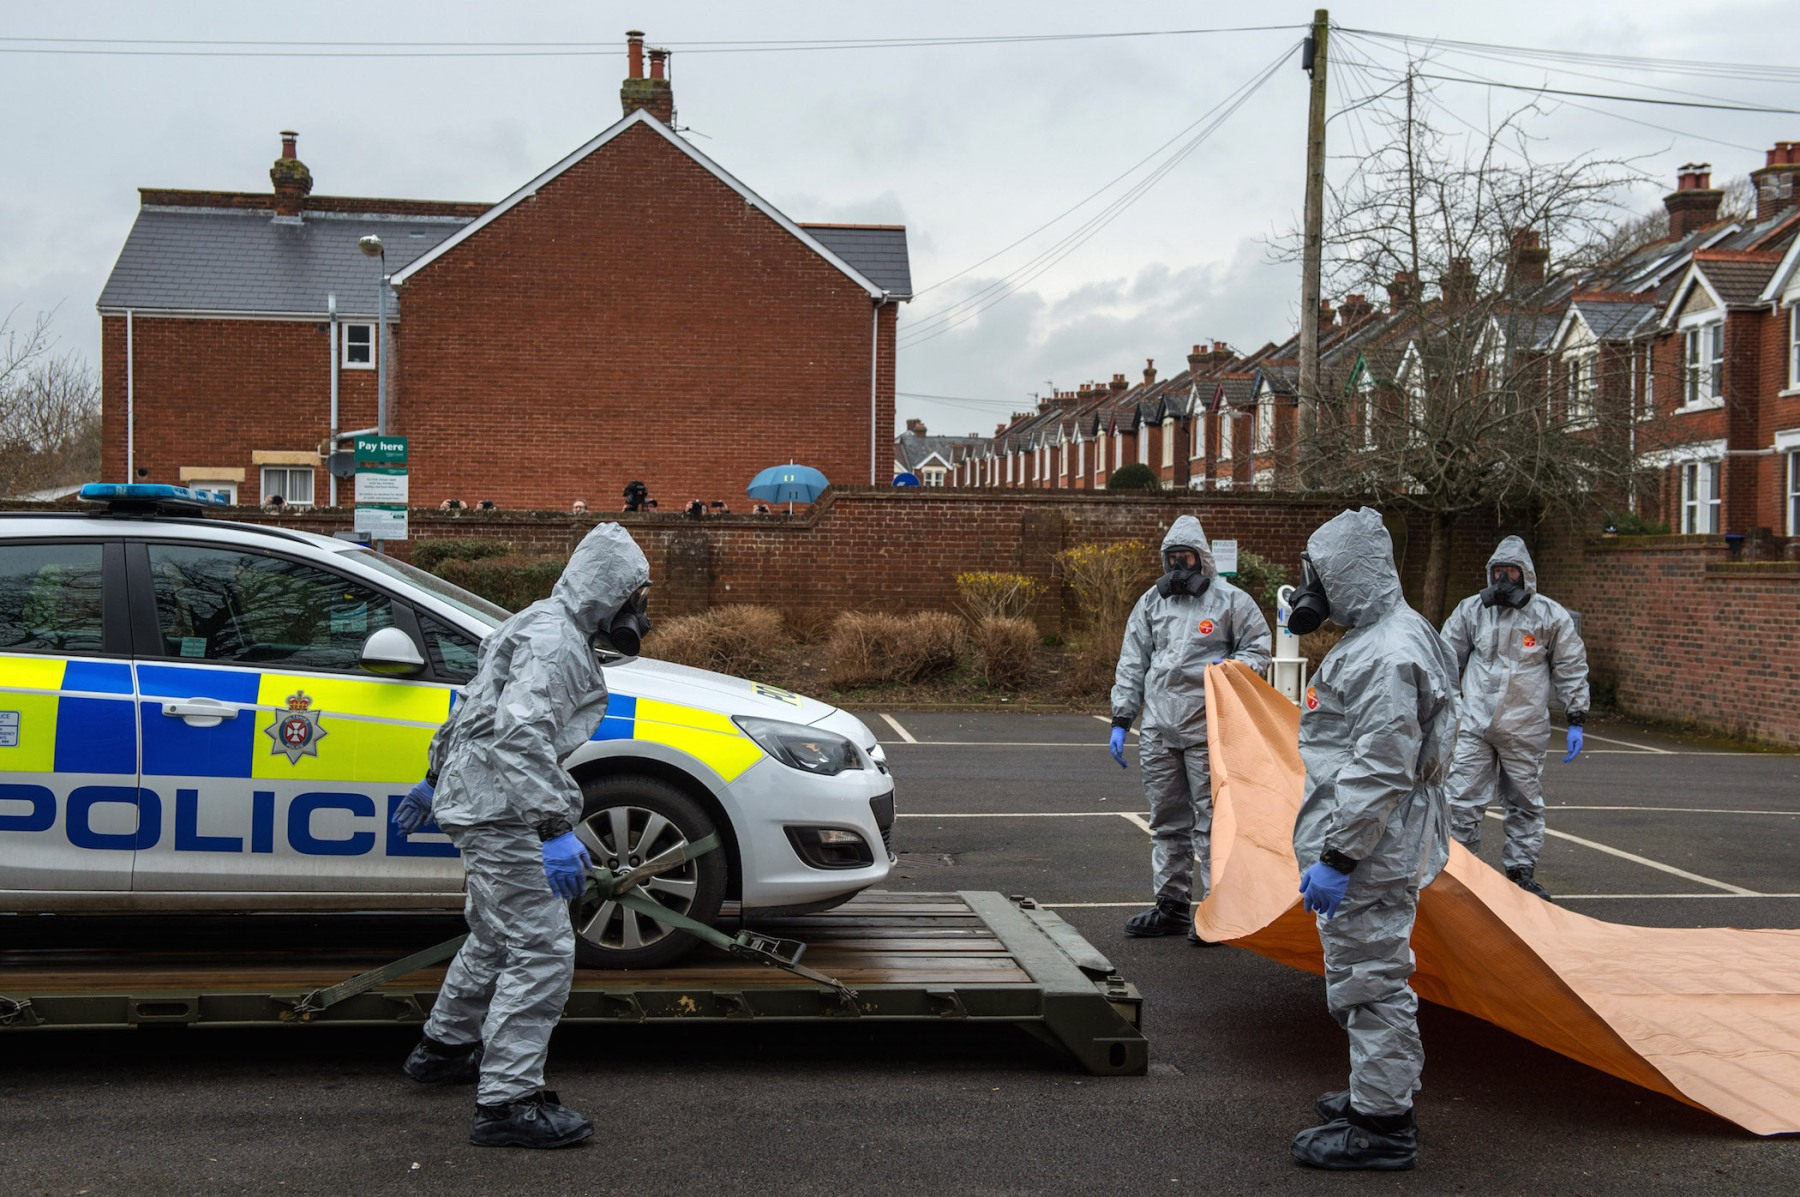 Military personnel wearing protective suits remove a police car and other vehicles from a public park park as they continue investigations into the poisoning of Sergei Skripal on March 11, 2018 in Salisbury, England. One of the men accused of the poisoning has been revealed to be Alexander Mishkin, reportedly a trained Russian military doctor. (Photo by Chris J Ratcliffe/Getty Images)